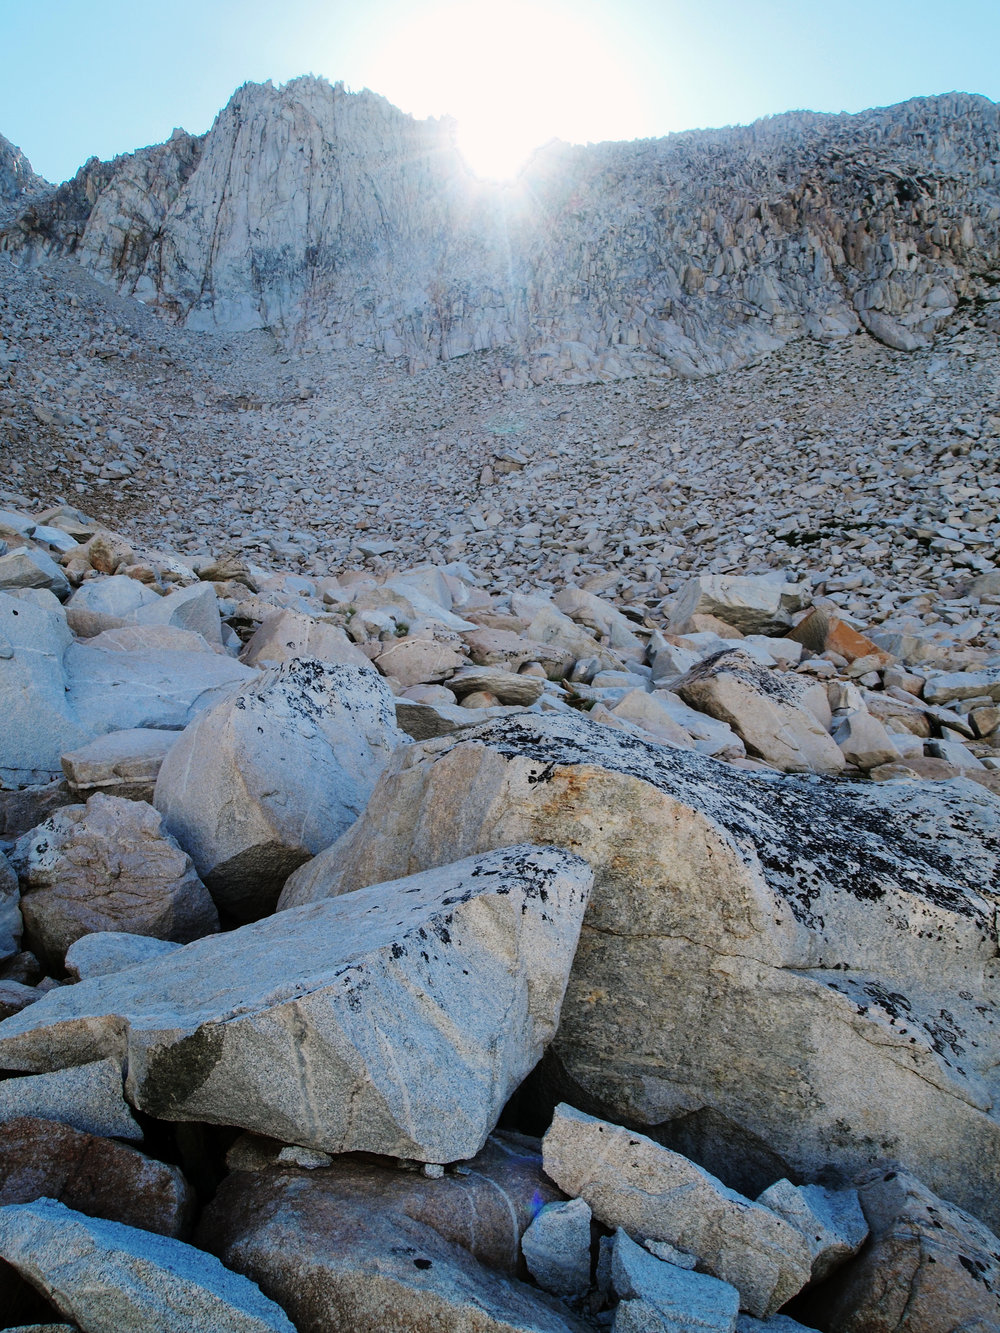 Talus slope, Beartrap Lake, Sierra Nevada - Photo by Tim Giller